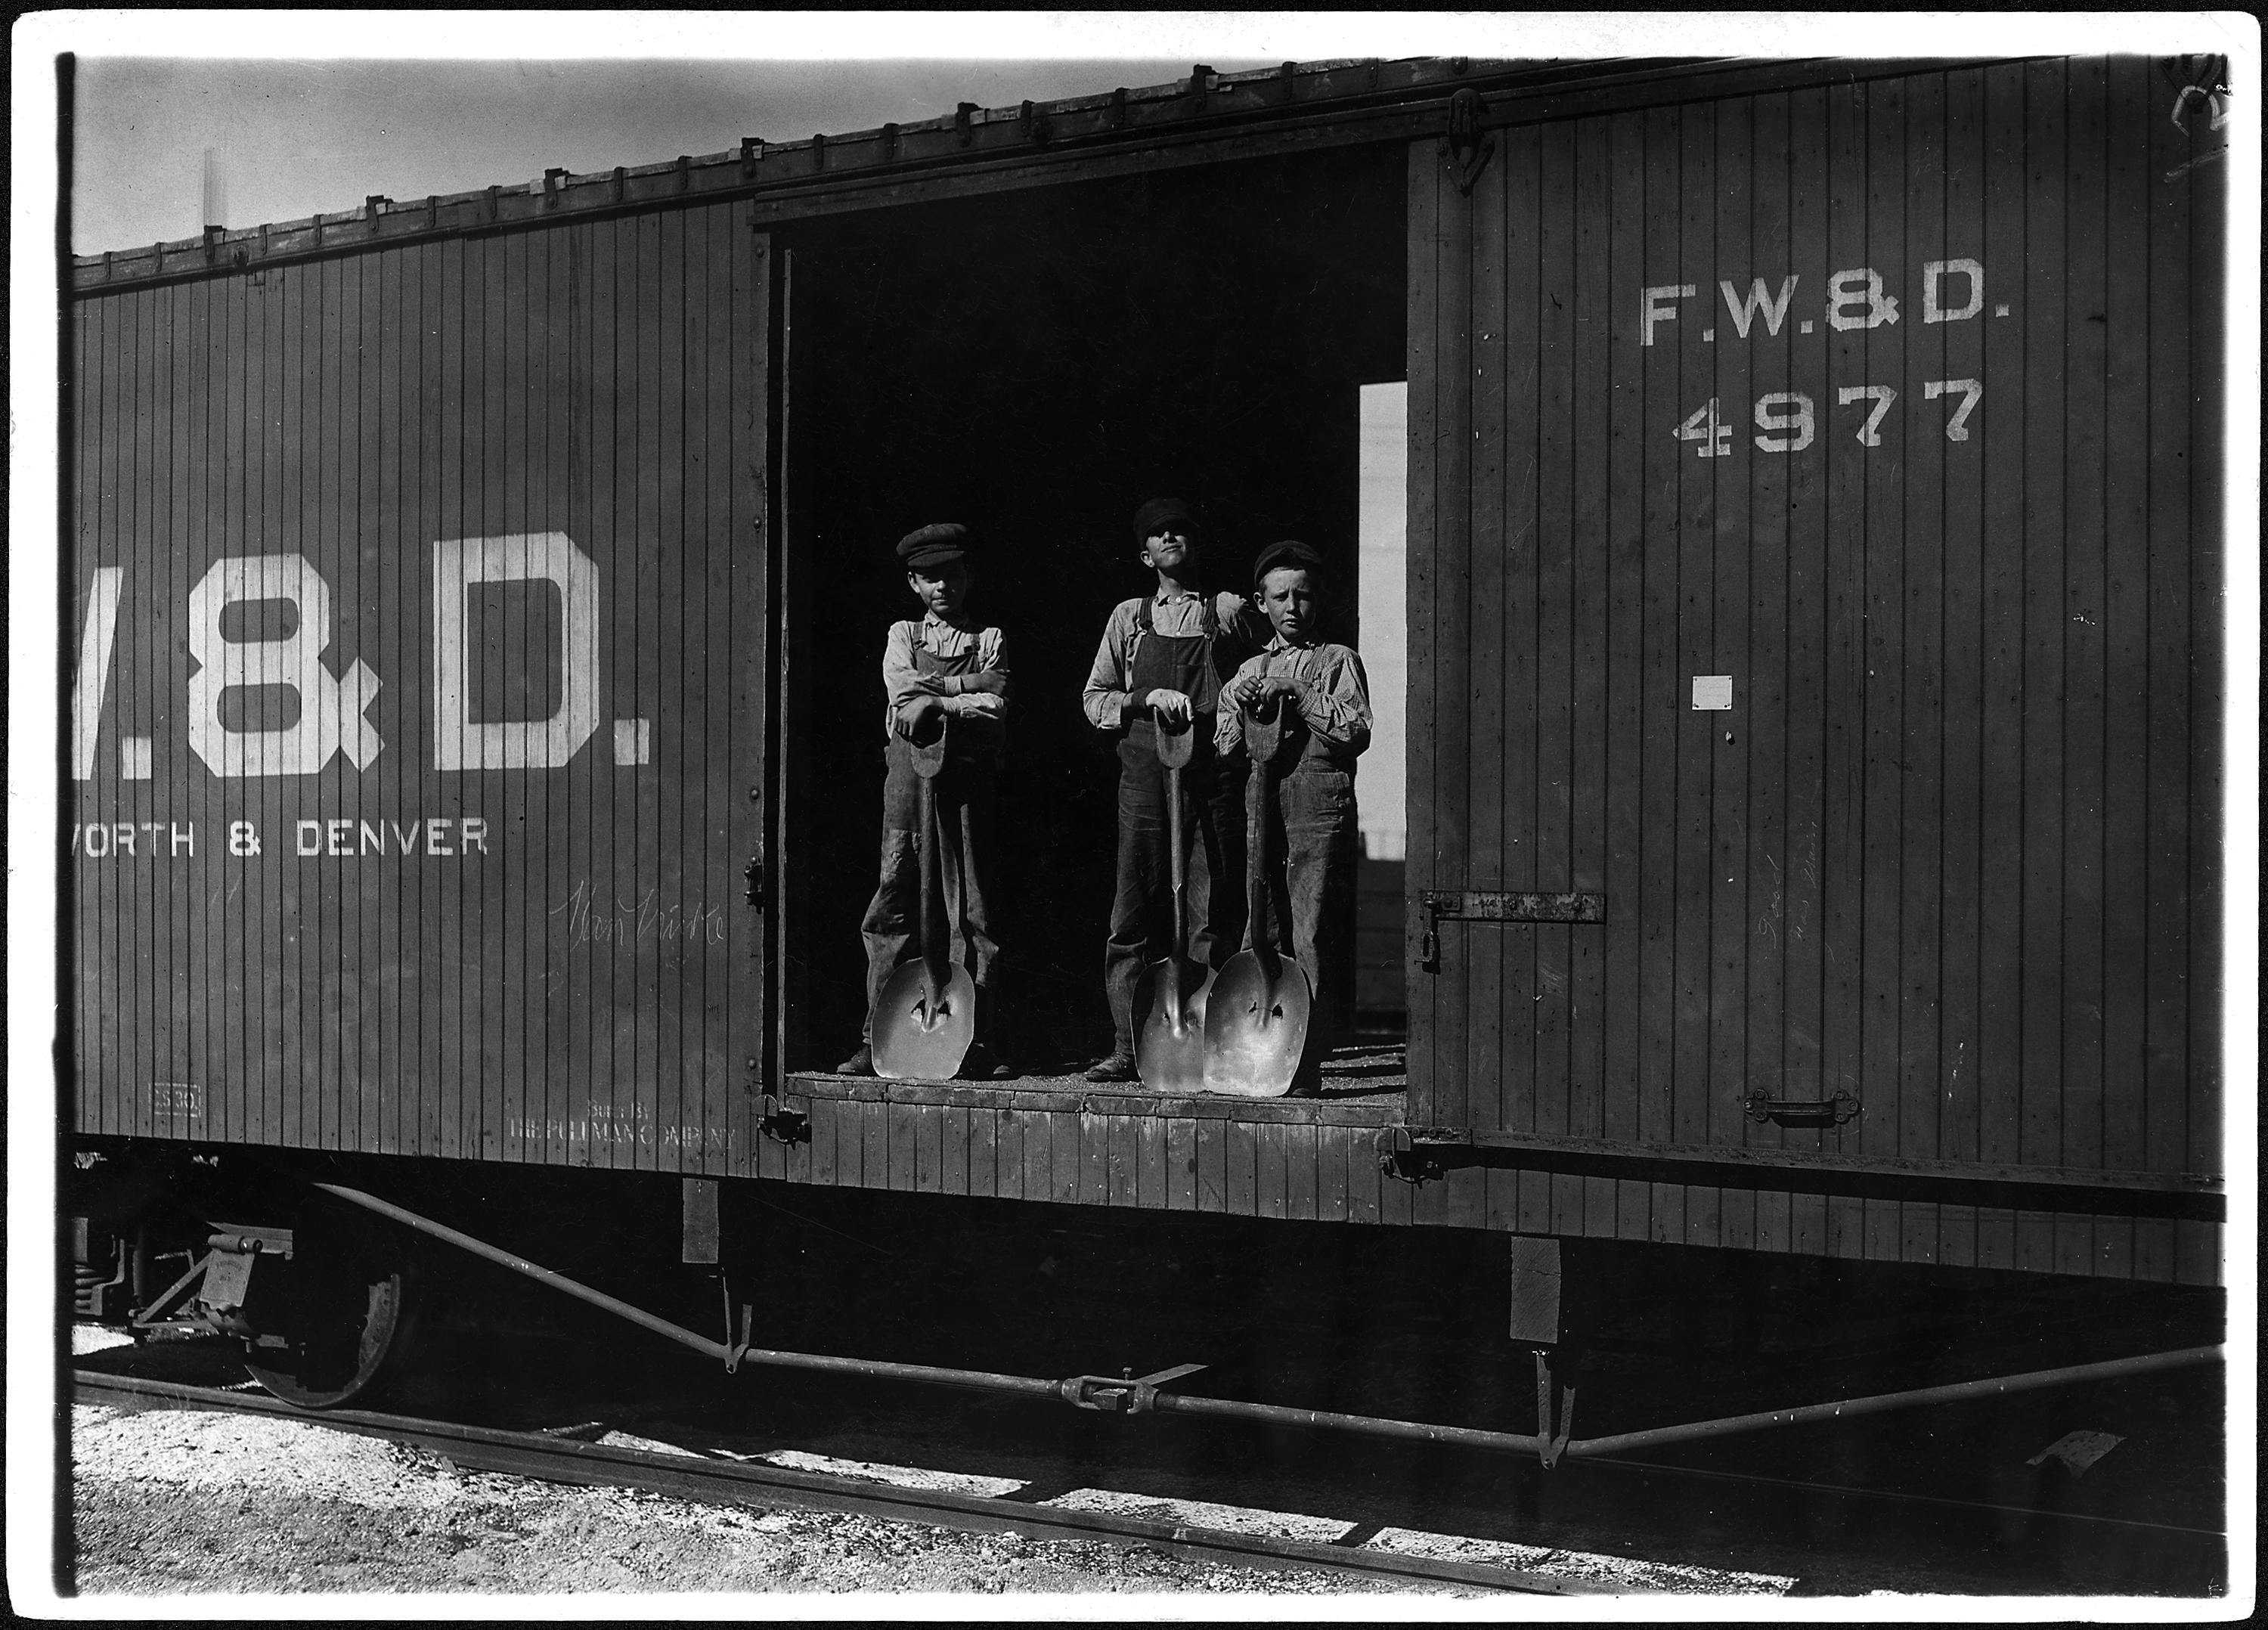 Three young boys with shovels standing in doorway of a Fort Worth & Denver train car, 1912